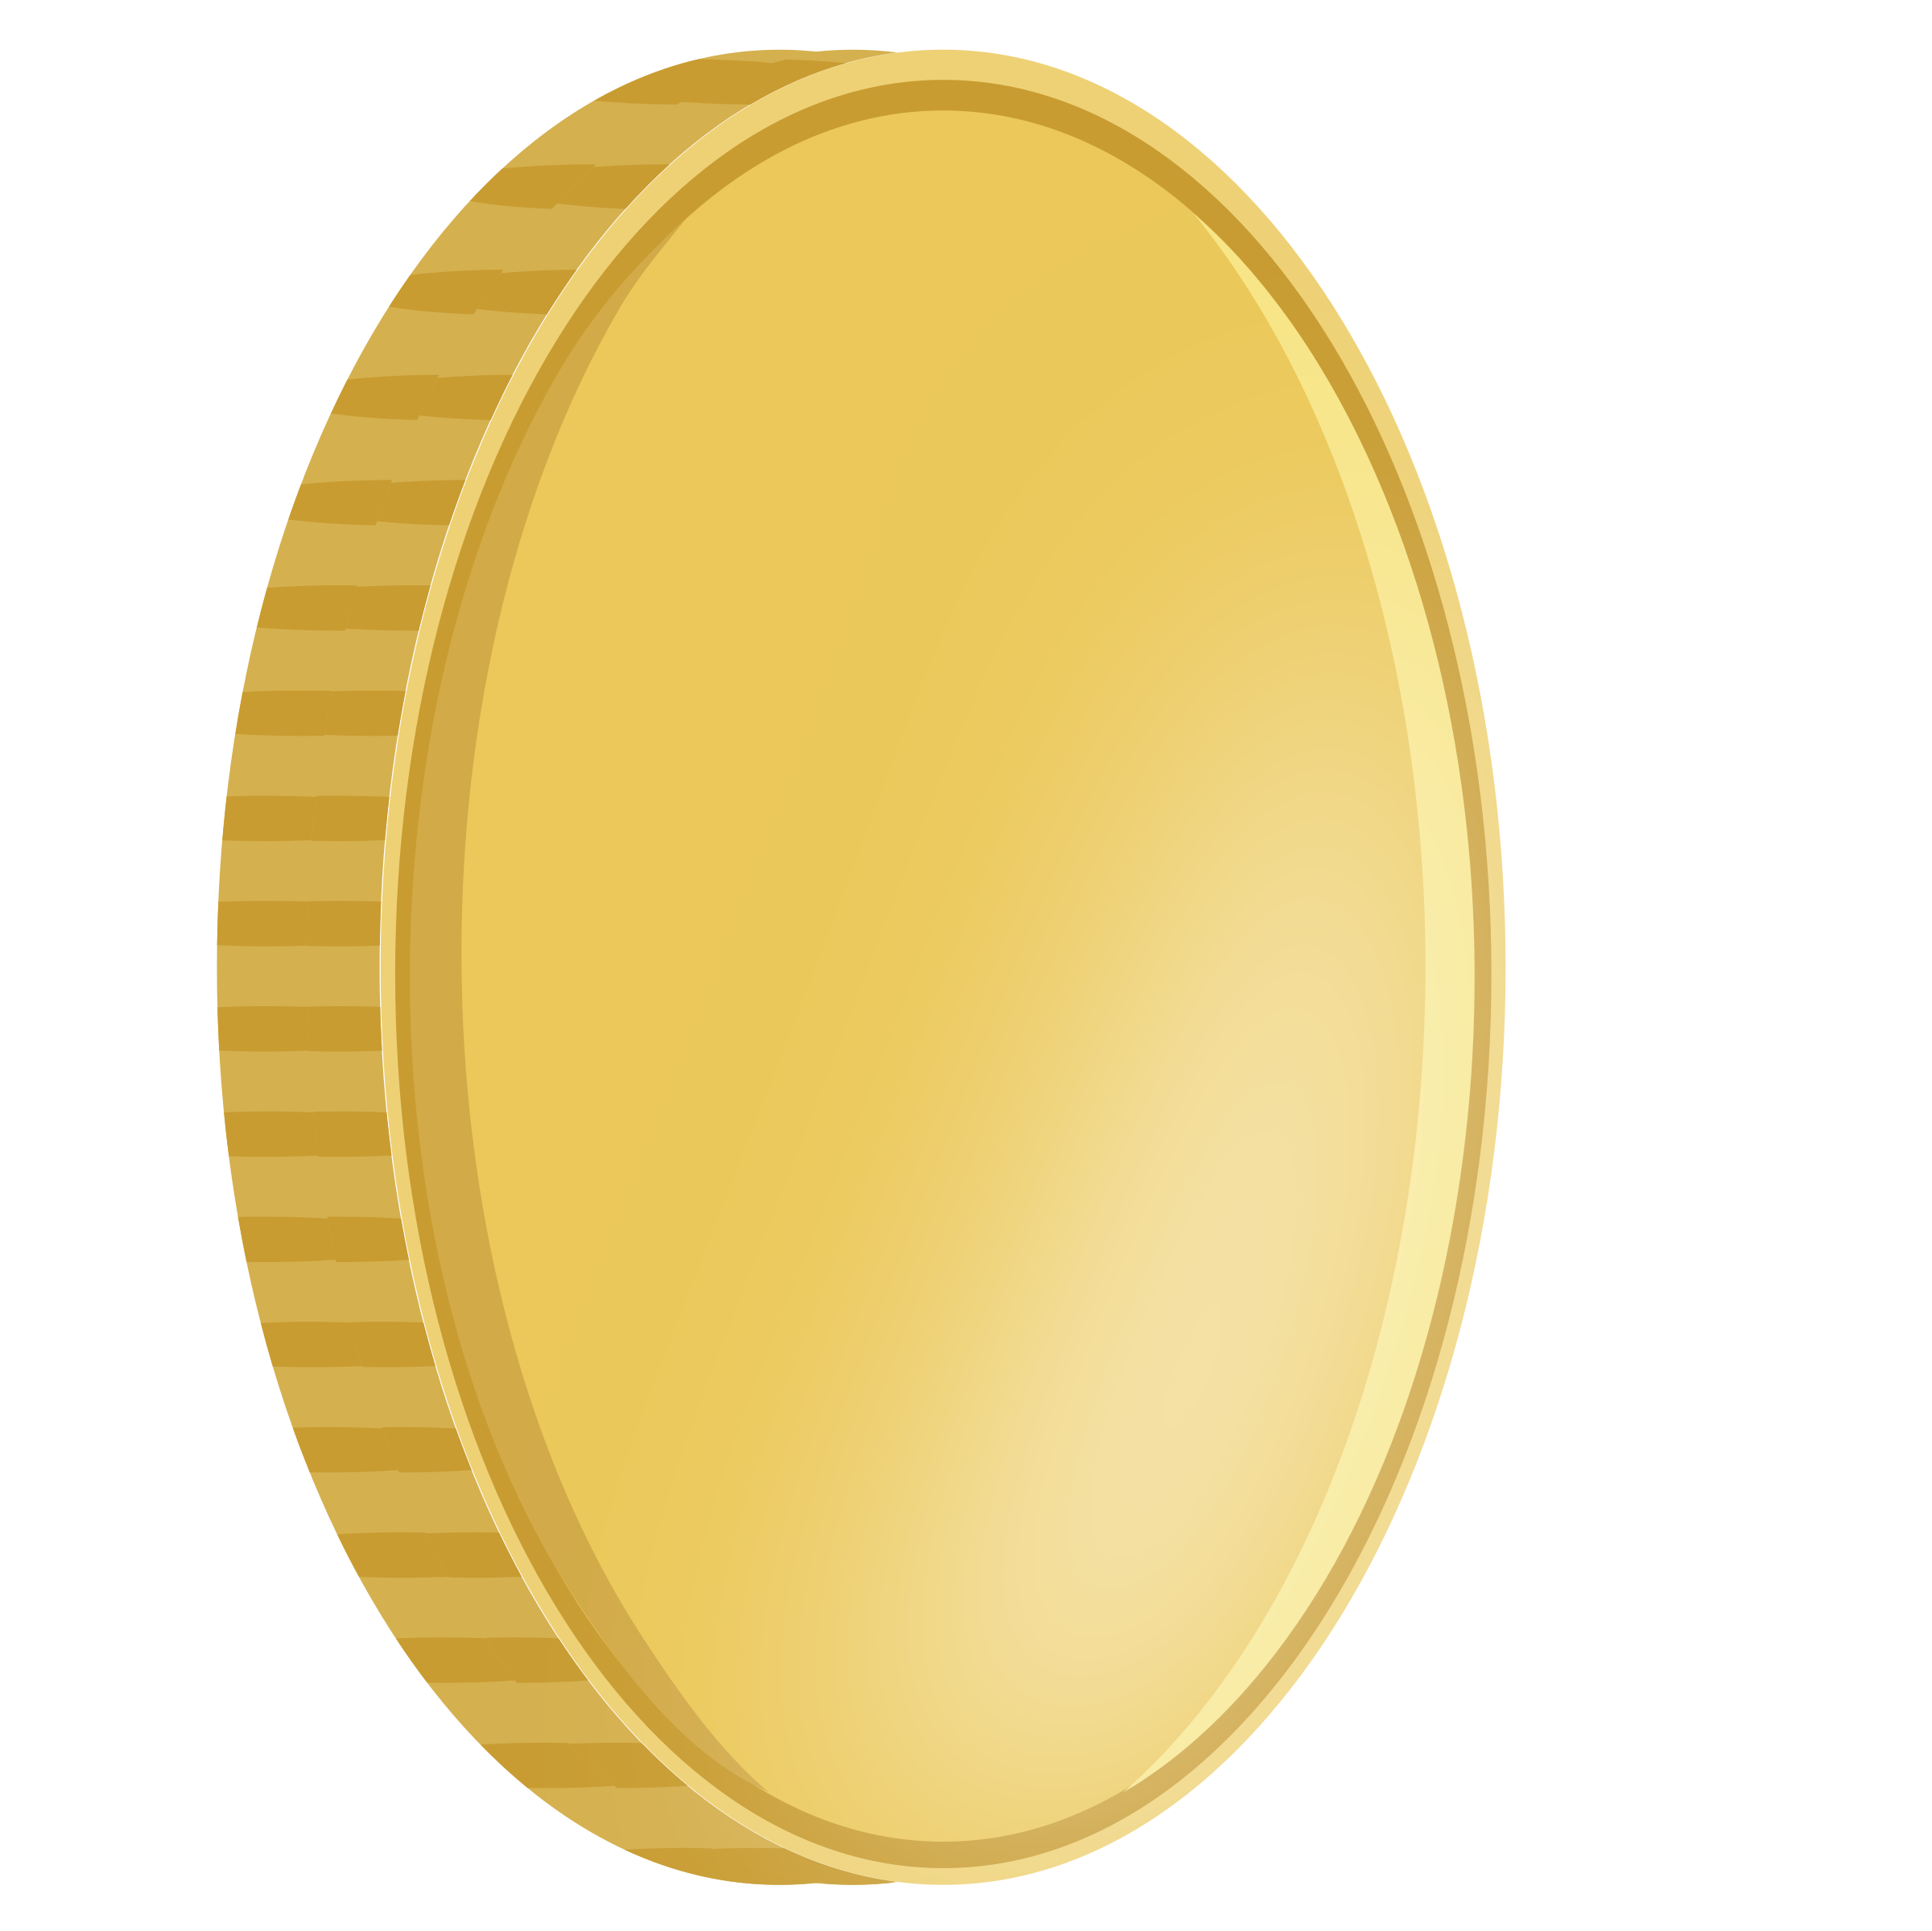 Gold clipart coin. Spinning big image png